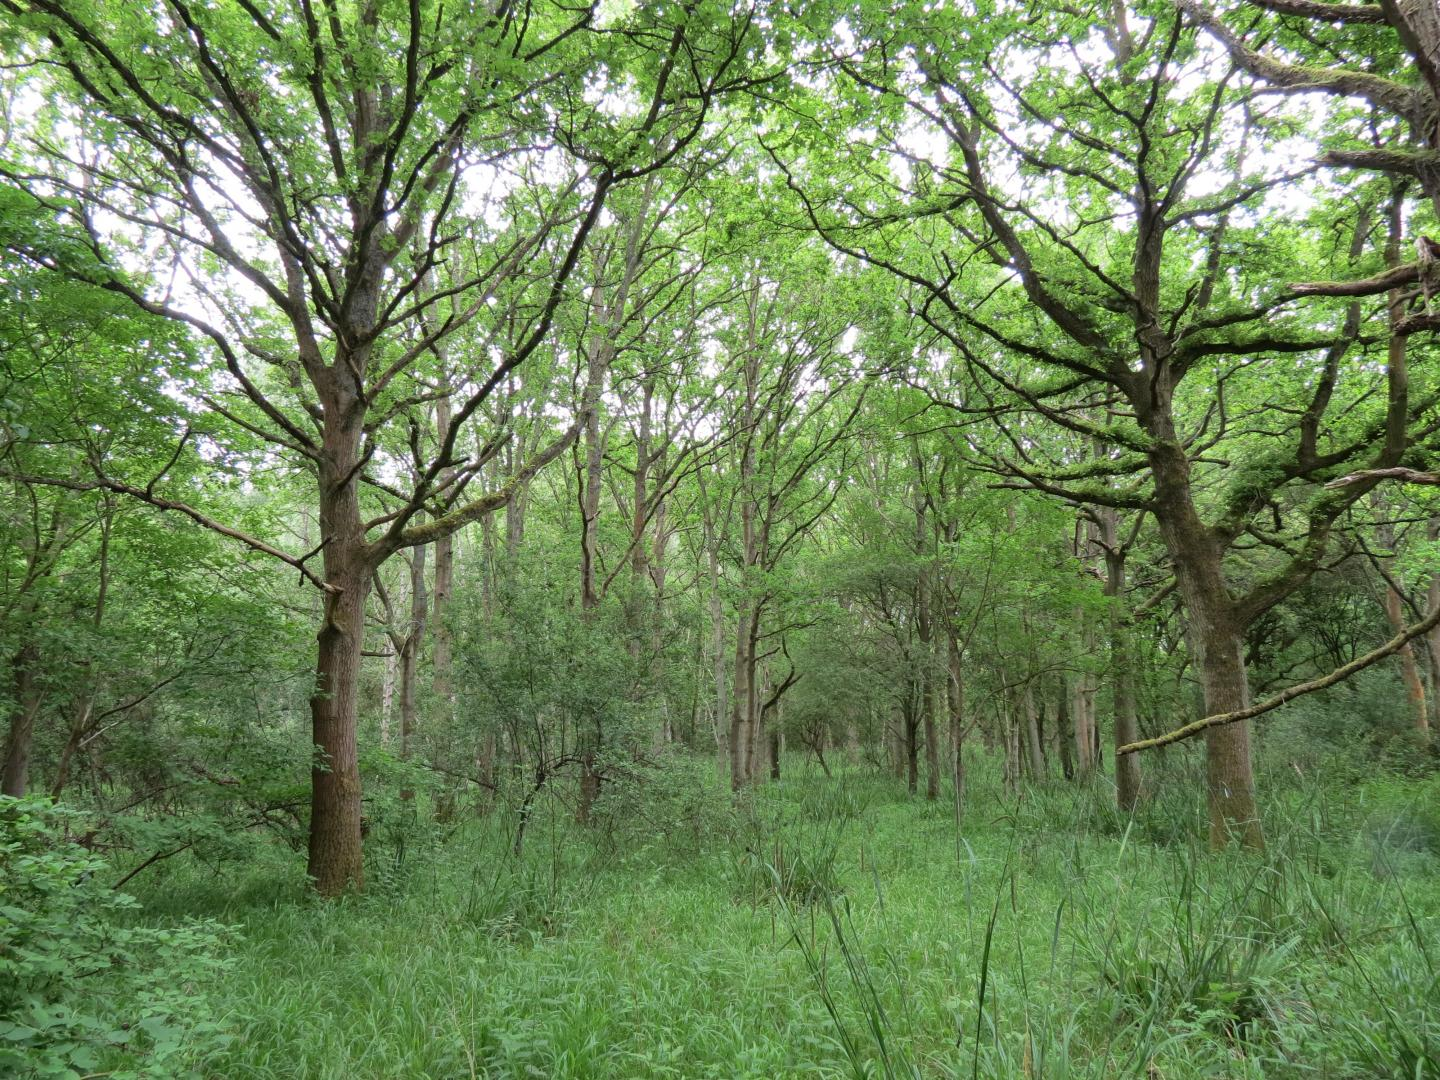 Woodland growth after 59 years